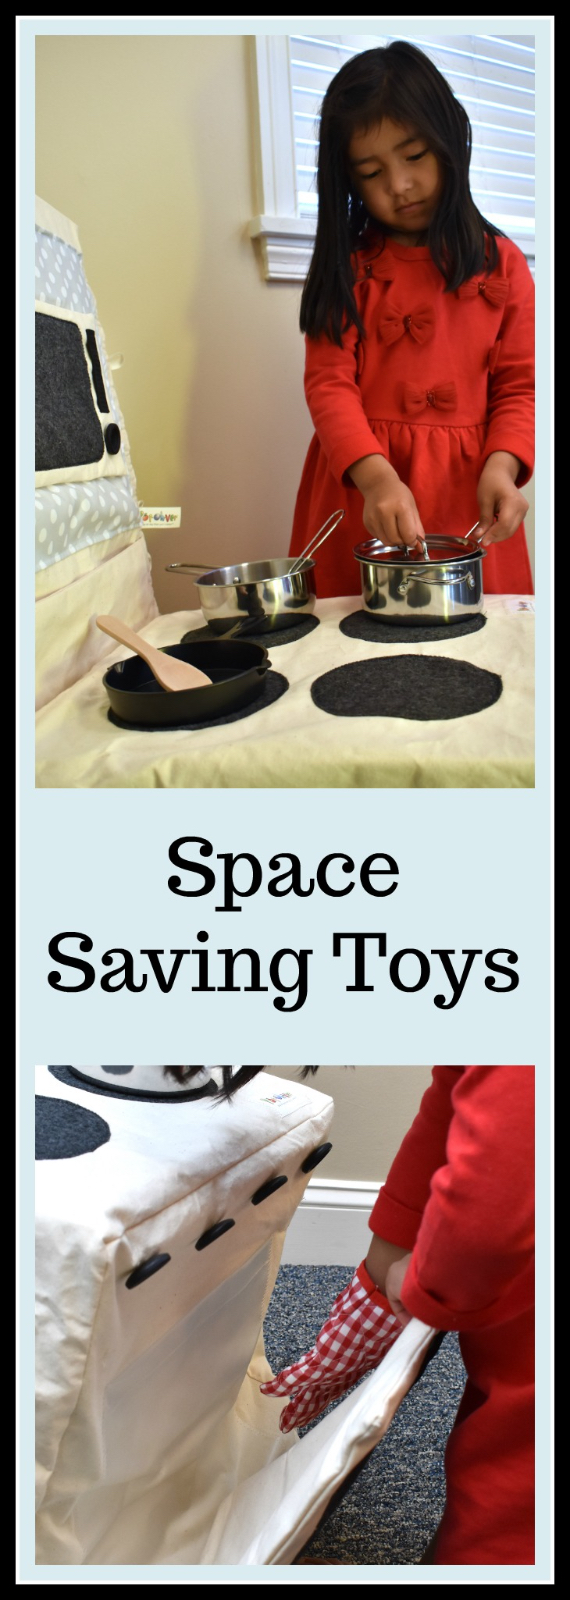 Space Saving Toys